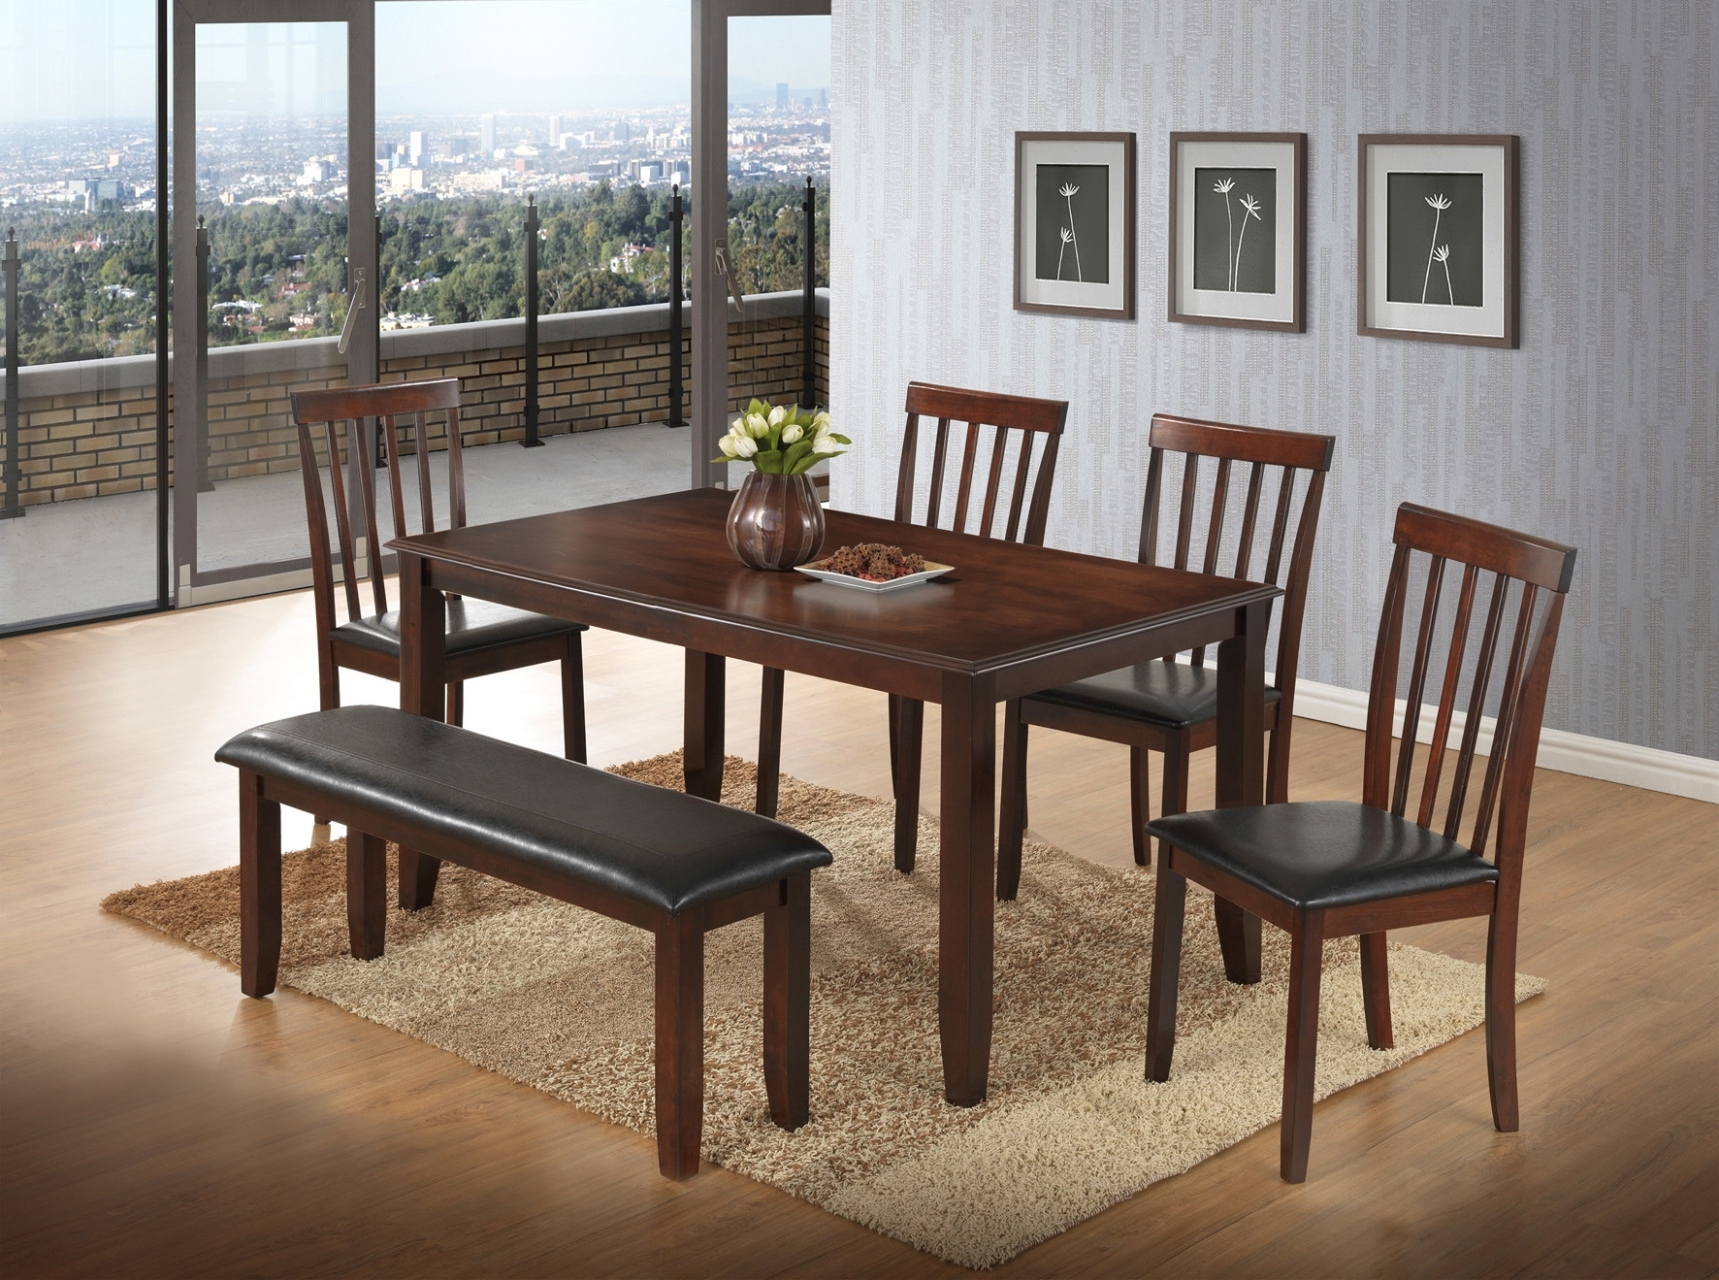 Recent Tables, Chairs, & Servers - Hello Furniture with regard to Jaxon 5 Piece Extension Round Dining Sets With Wood Chairs